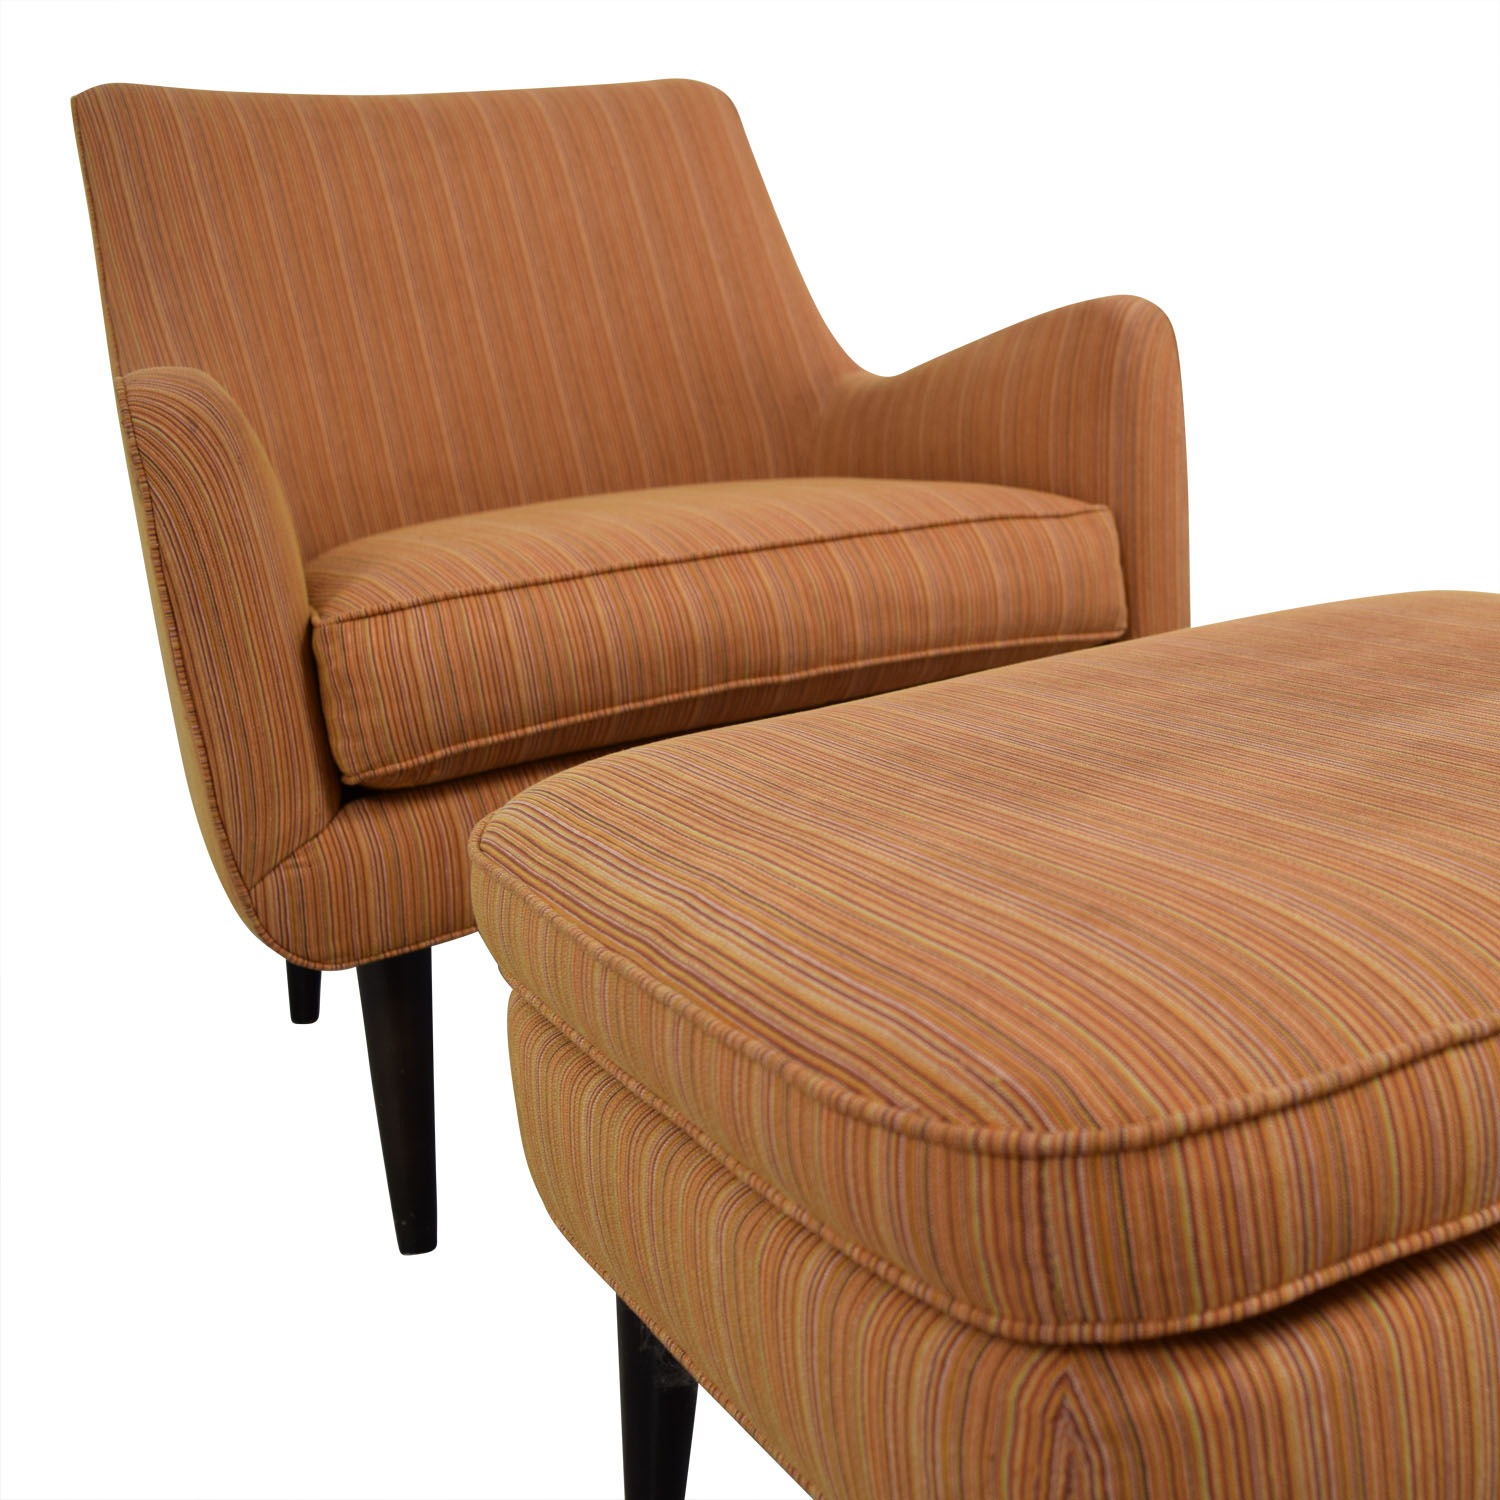 Room & Board Room & Board Orange Striped Lounge Chair & Ottoman Chairs